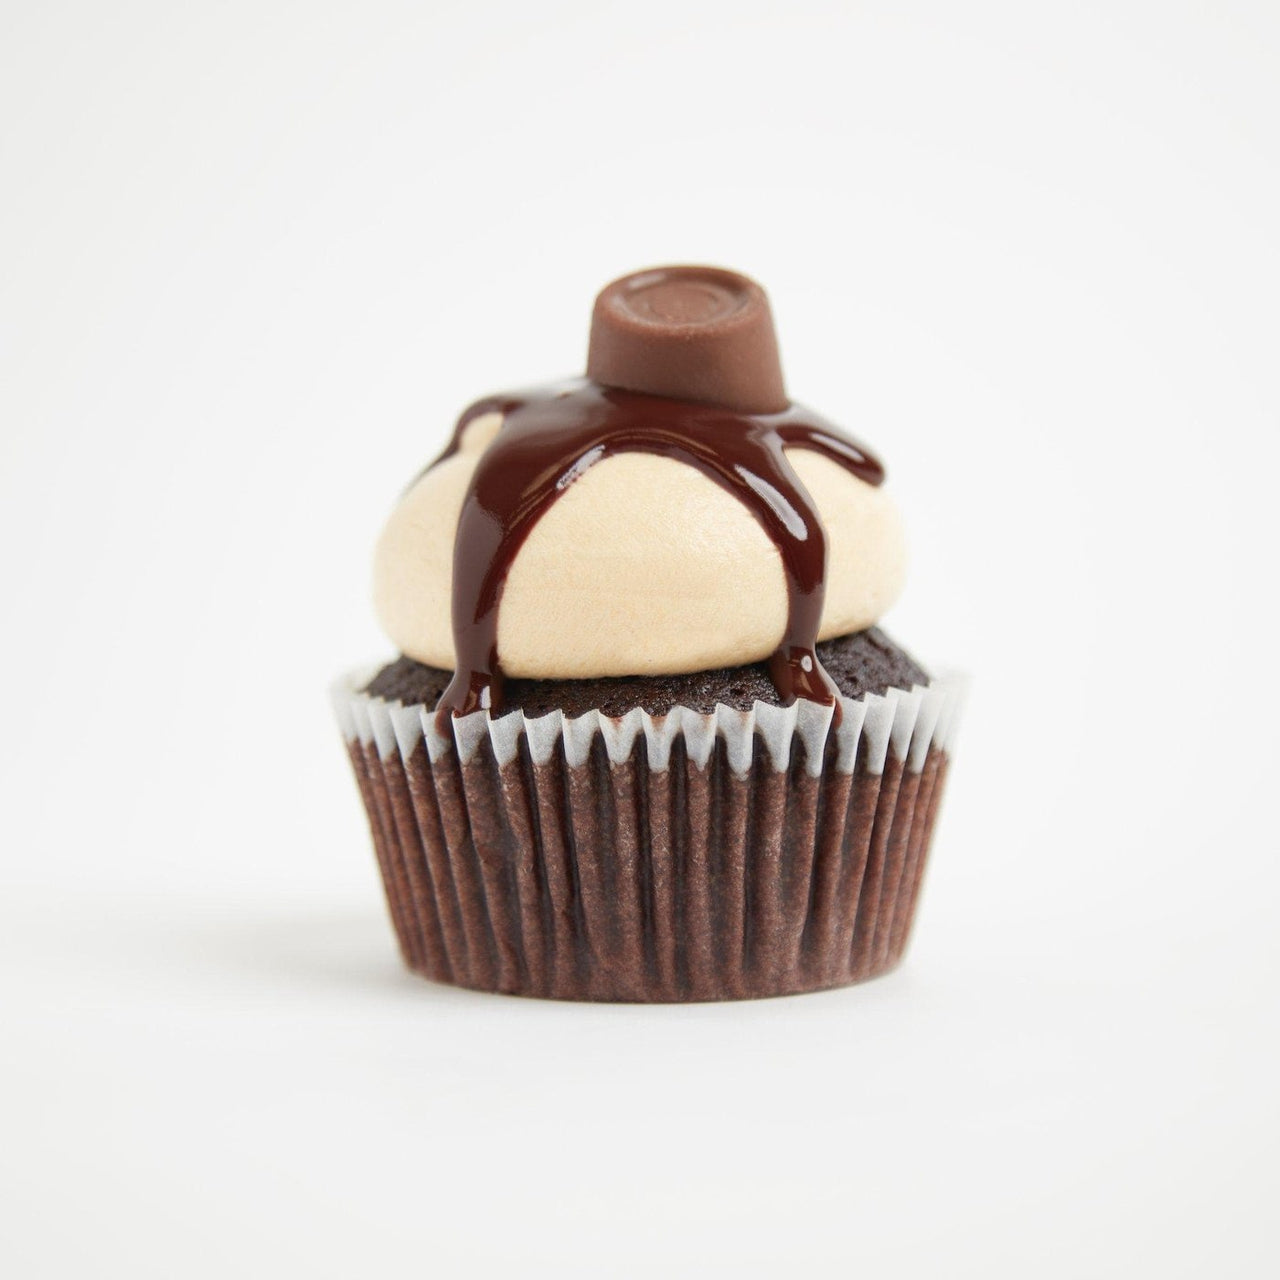 Caramel Rolo Cupcakes by Crumbs & Doilies